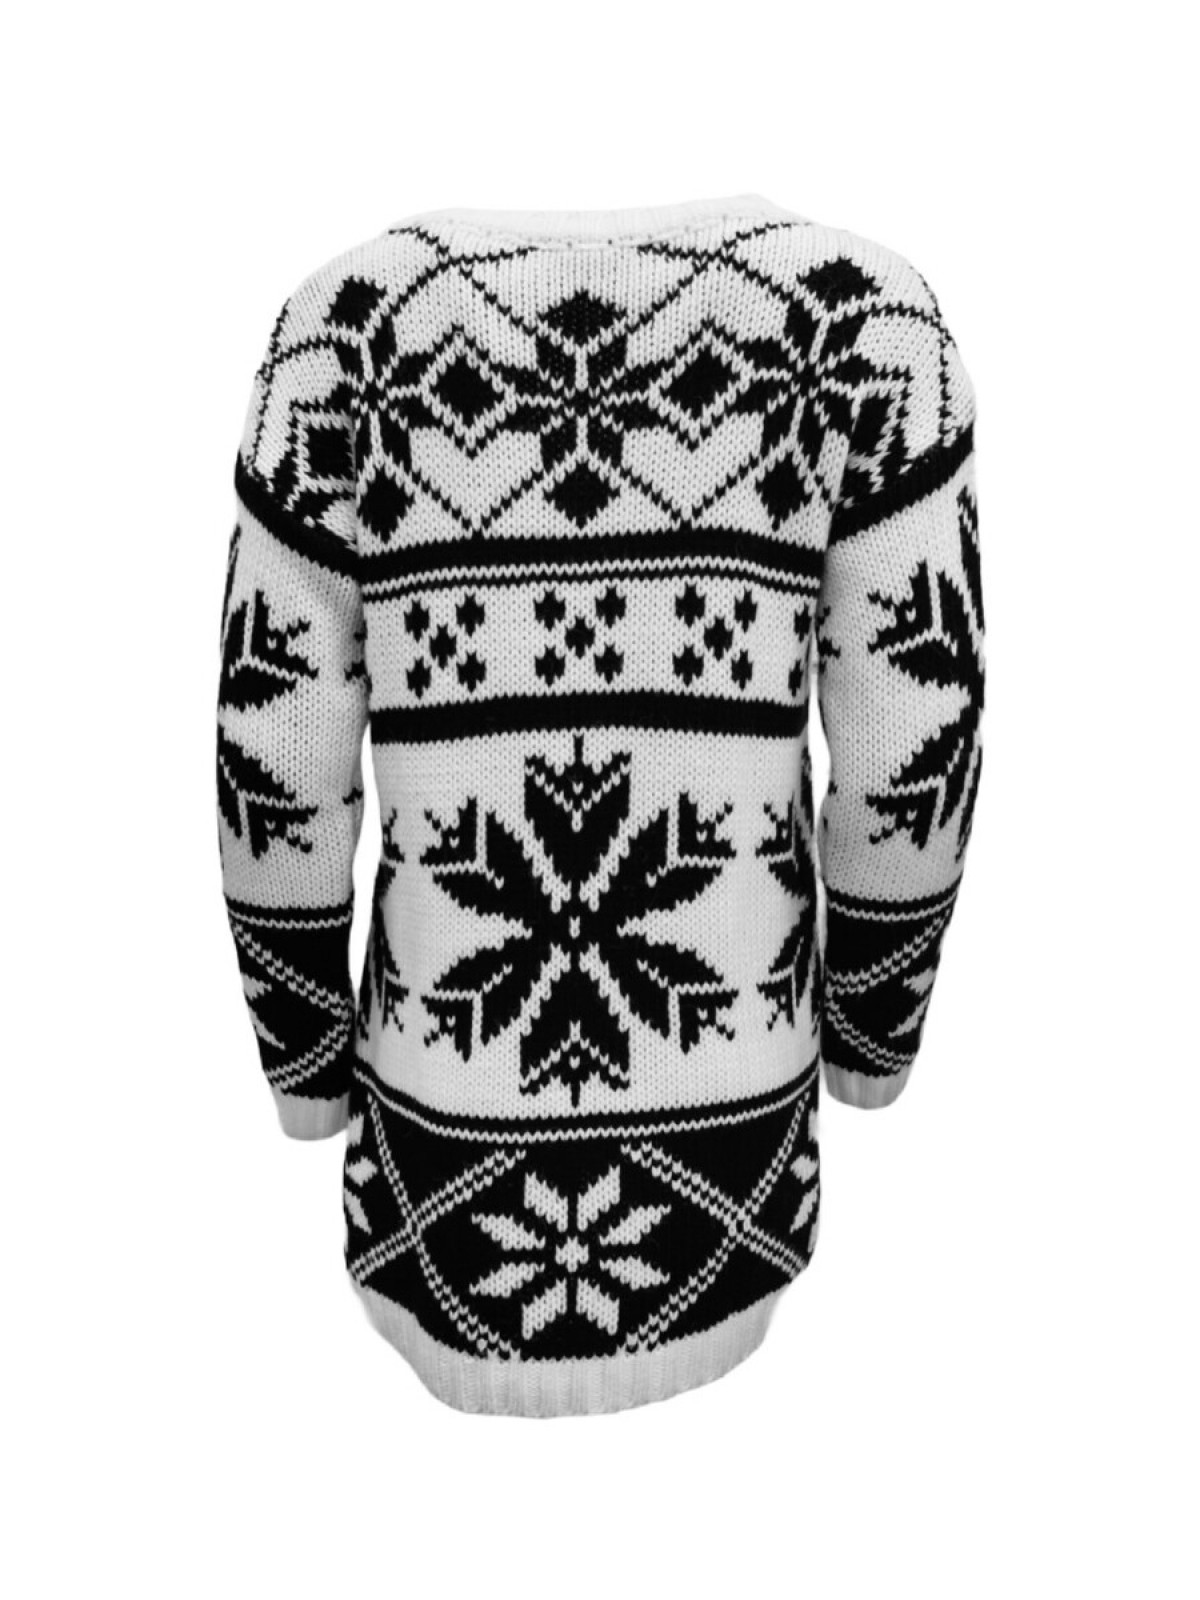 SNOWFLAKE CHUNKY KNIT SWEATER